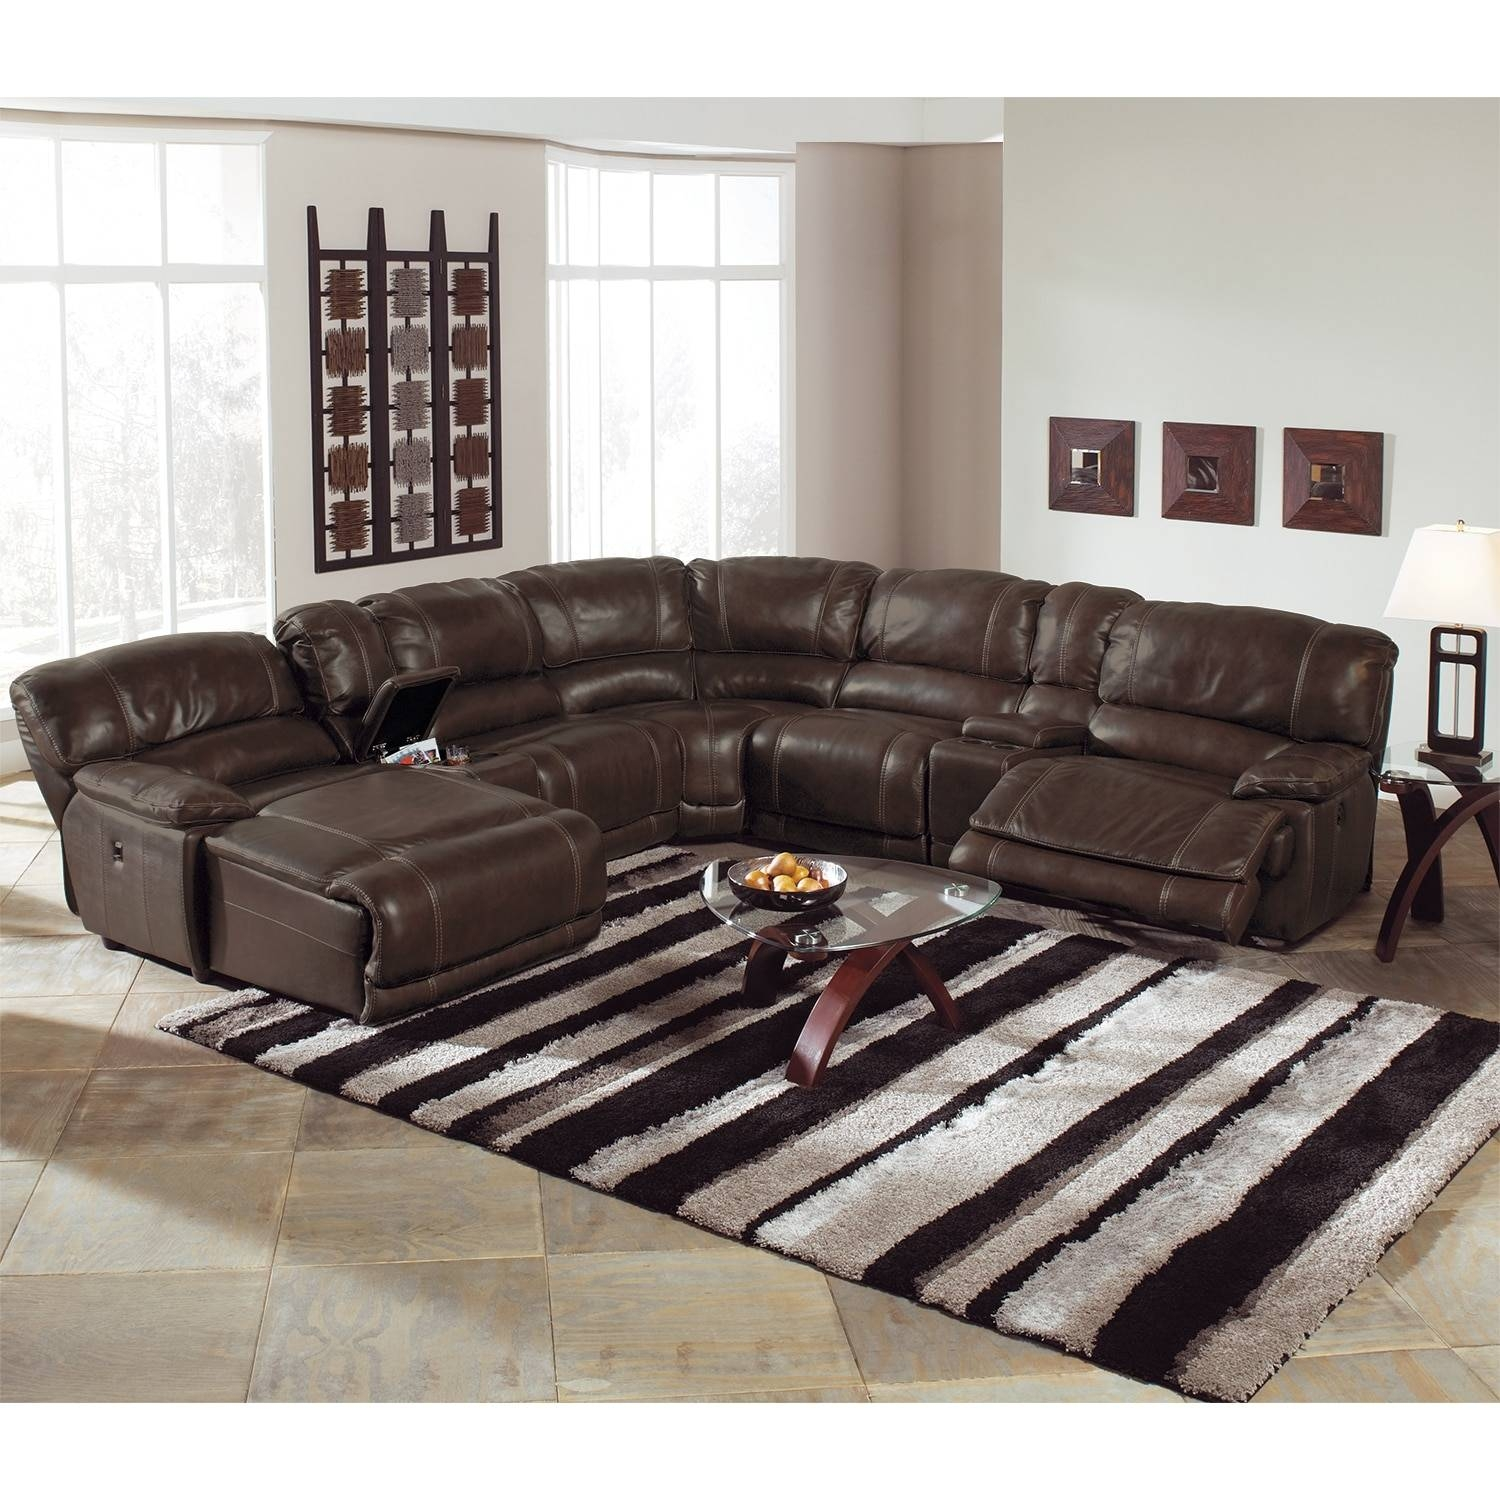 Remarkable Leather Sectional Sofa With Power Recliner 49 In Modern in Sectional Sofas Los Angeles (Image 21 of 25)